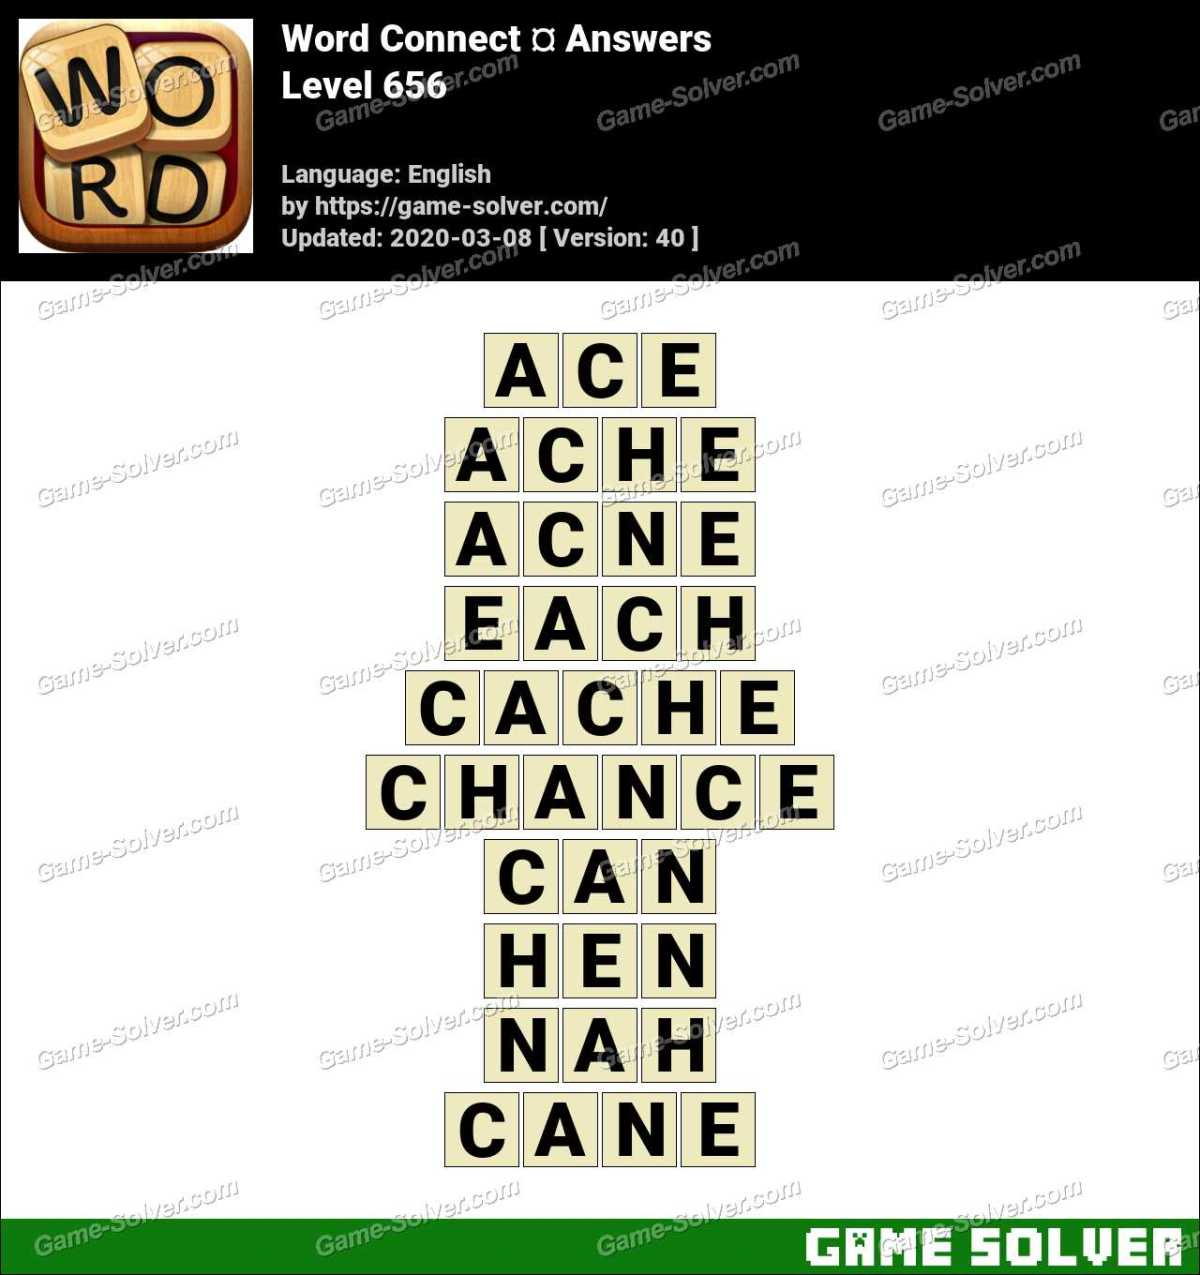 Word Connect Level 656 Answers